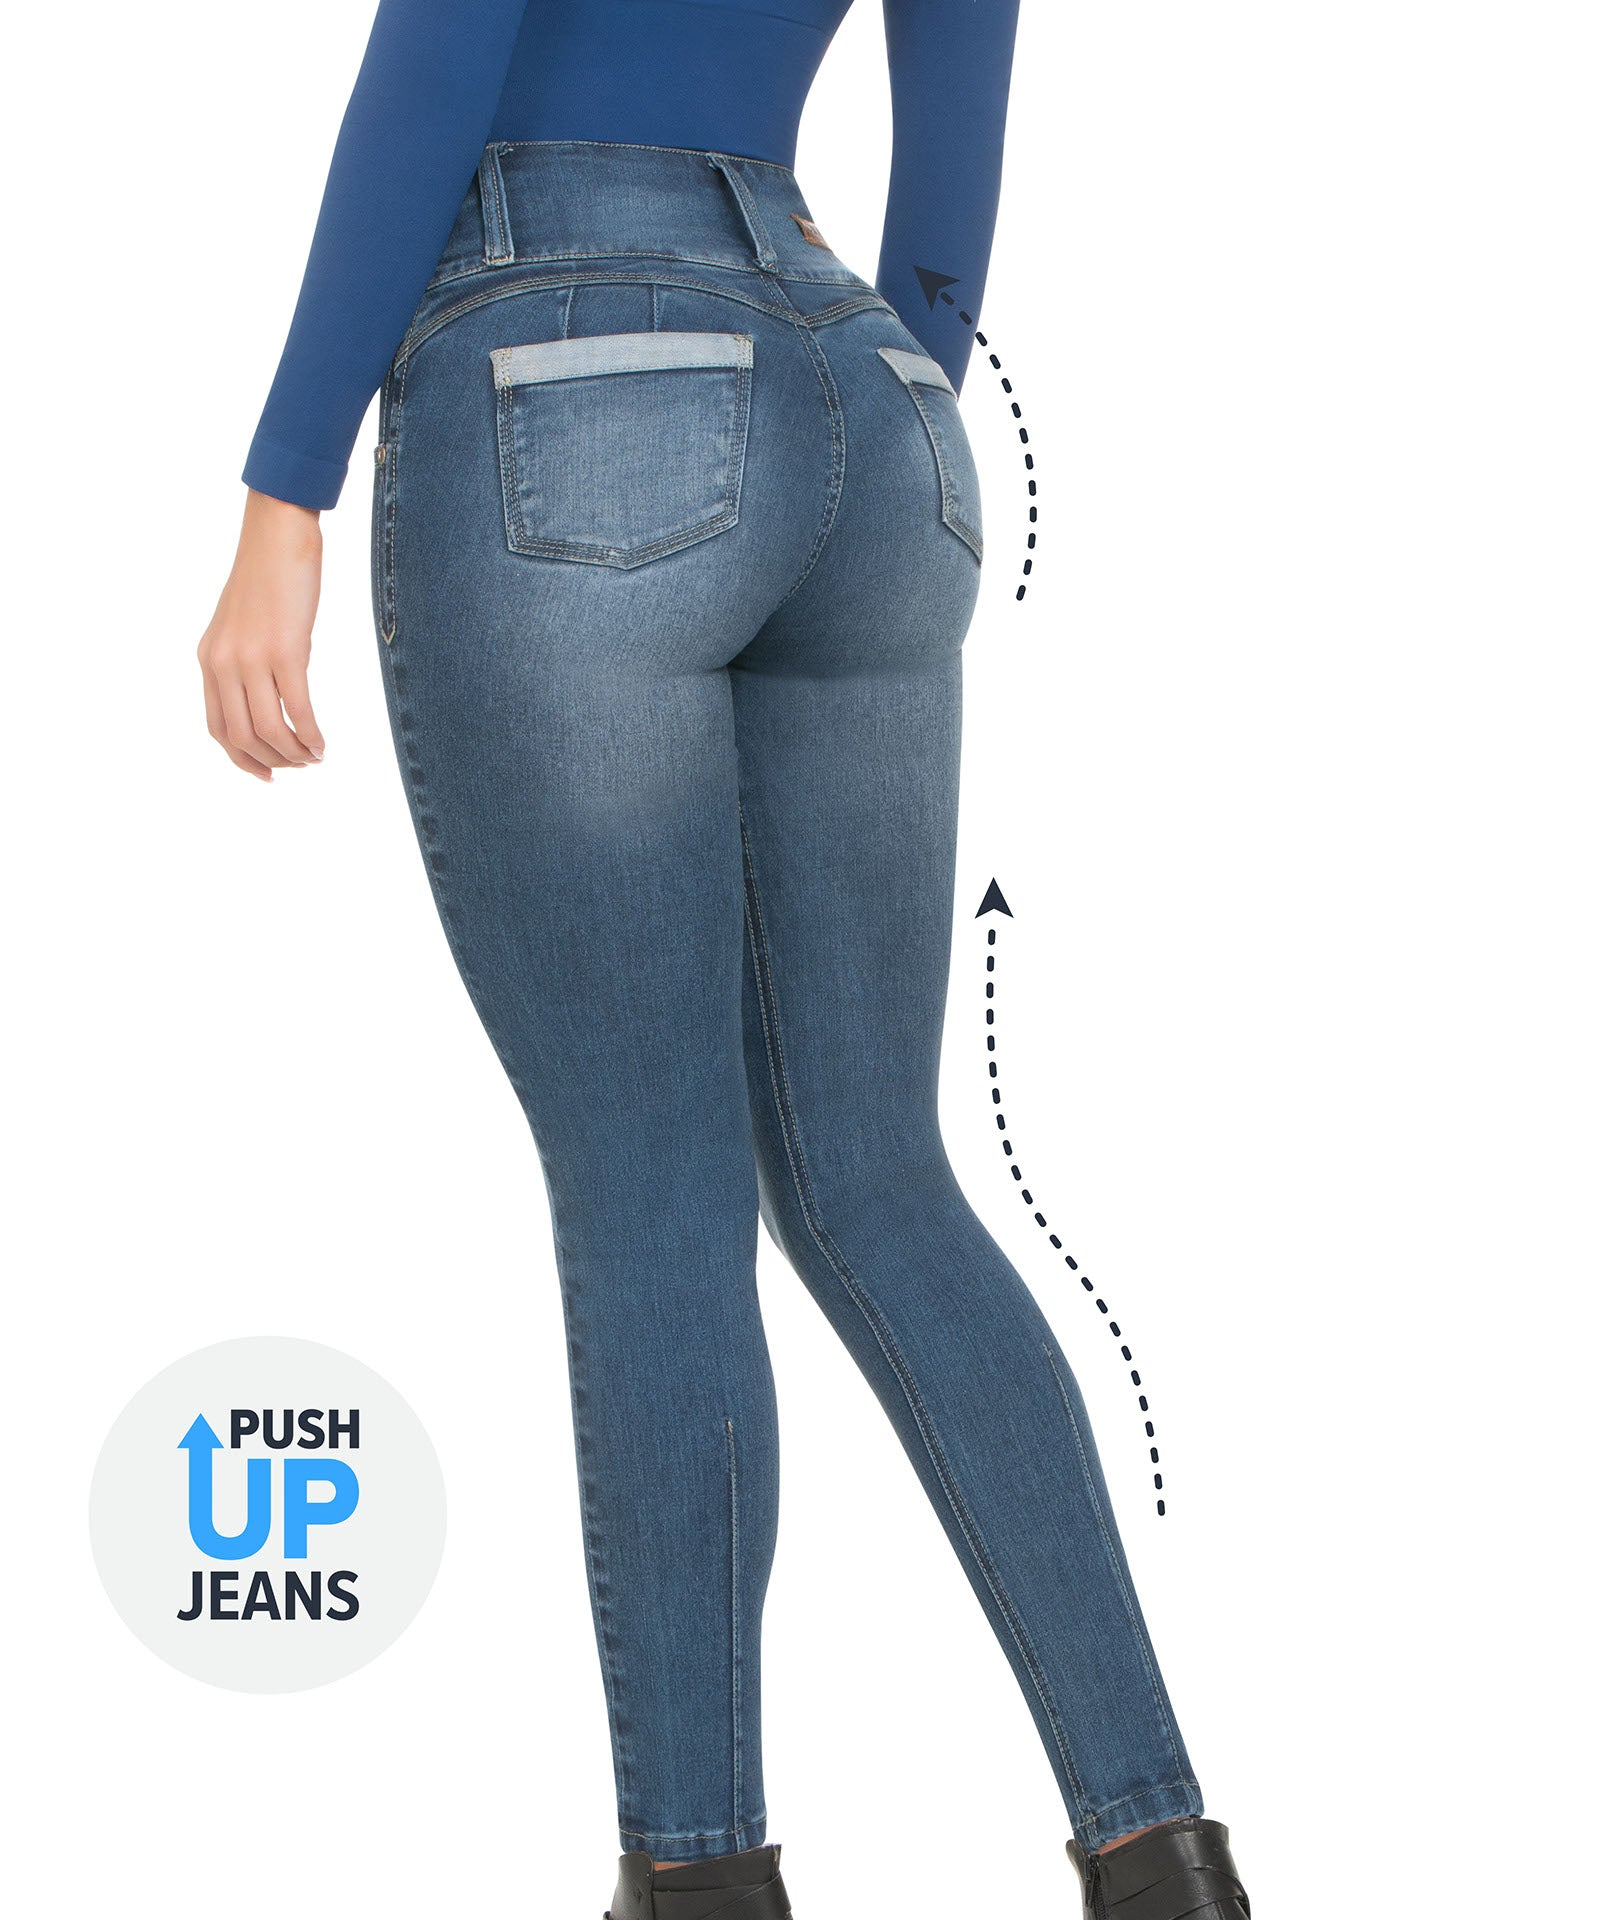 2041 - Push Up Jean by CYSM